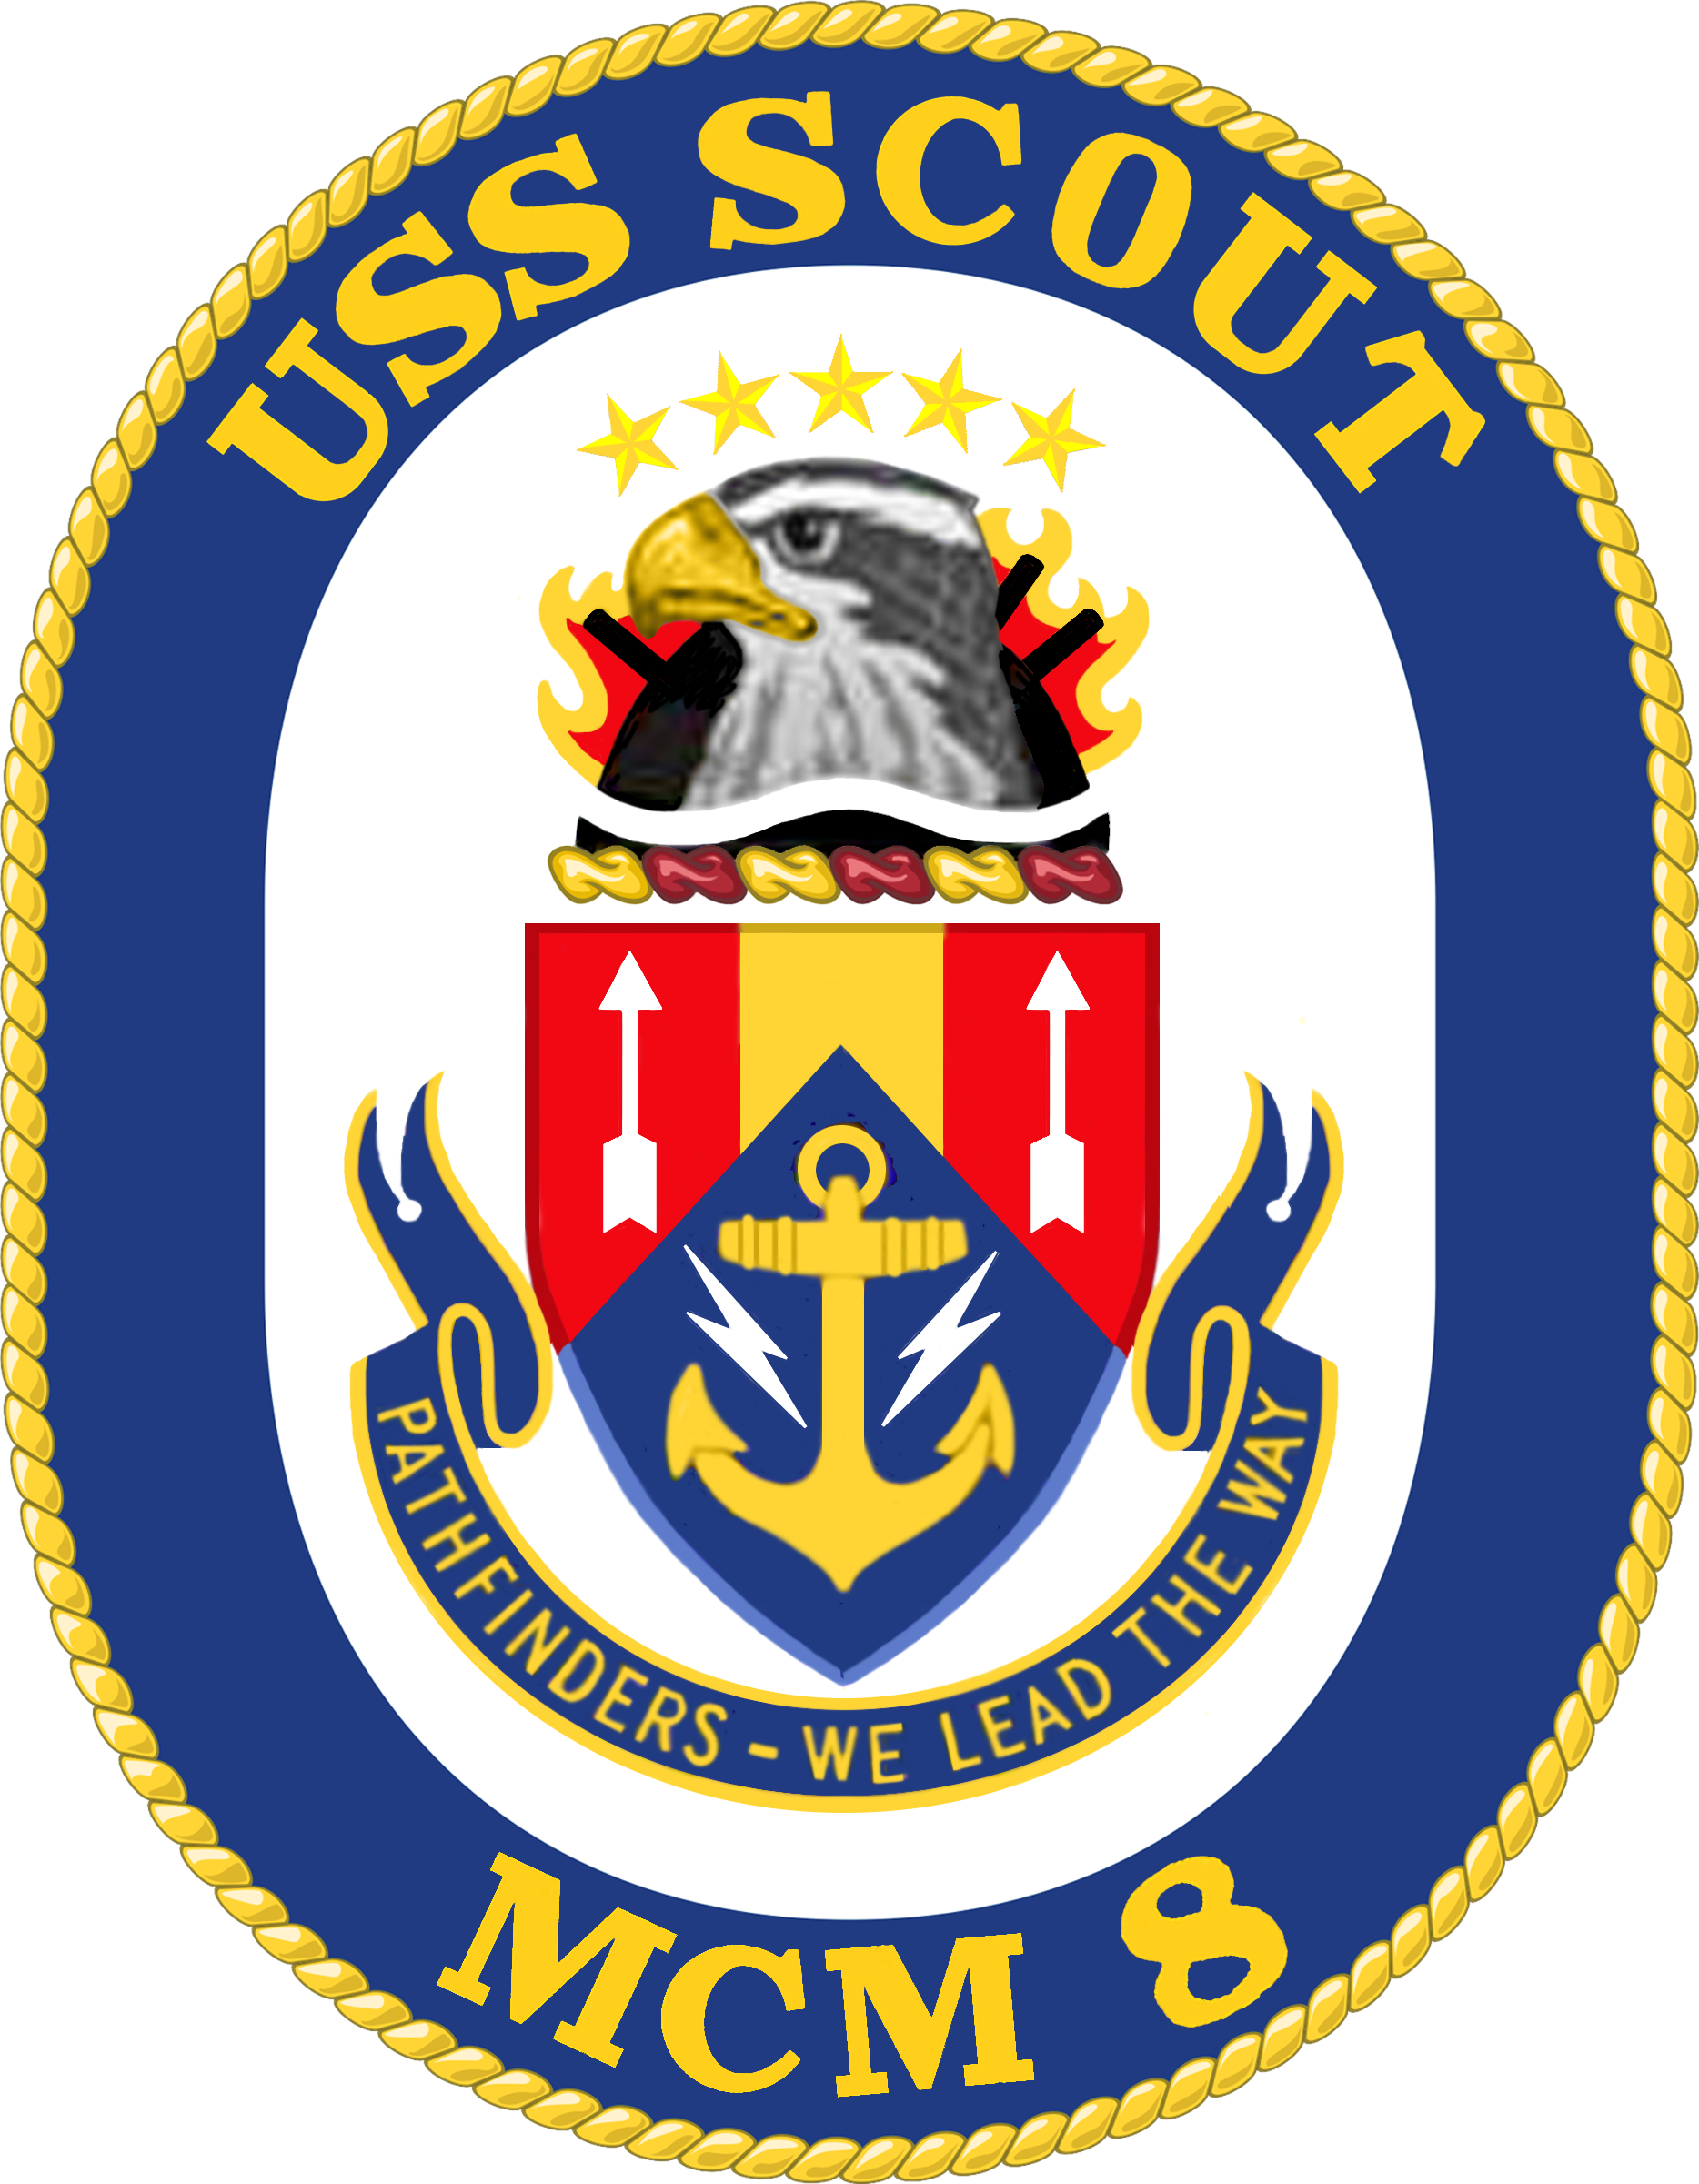 File Uss Scout Mcm 8 Crest Png Wikimedia Commons